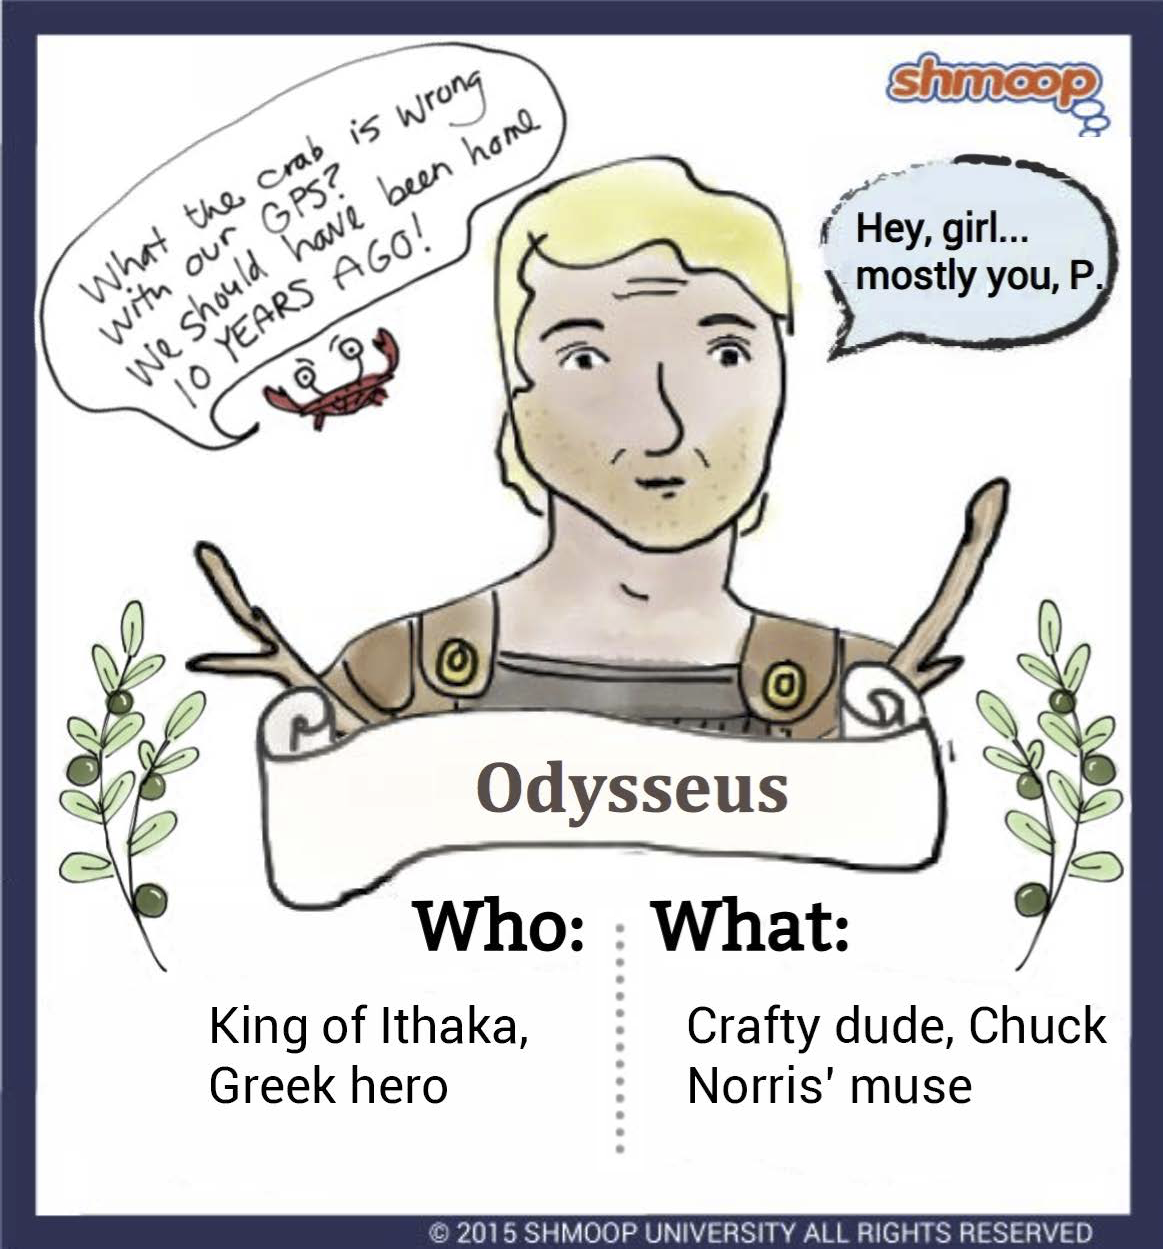 an analysis of the abilities of odysseus the great greek hero In the physical sense he is a great hero perhaps the most striking of the arguments in favor of odysseus being the ideal greek hero, is the encounter he has with hercules in the underworld closing up this analysis.